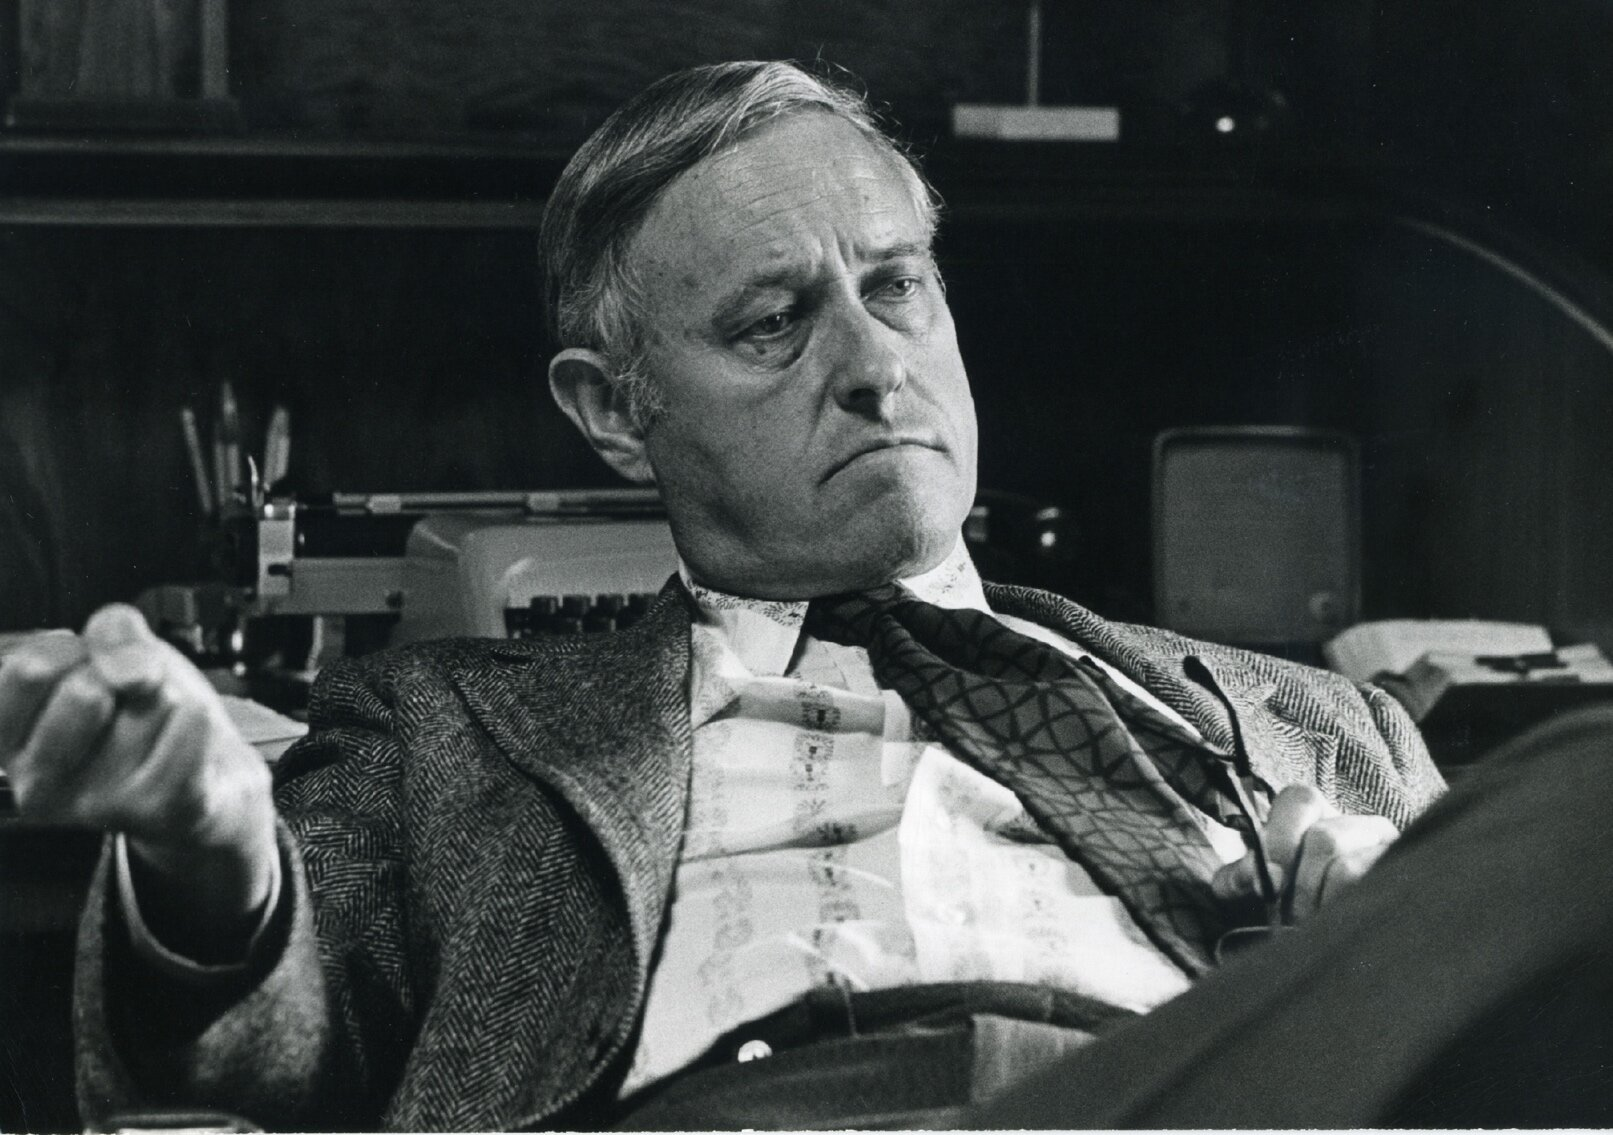 Tom McCall leveraged familiarity as a news broadcaster on KGW-TV to win election as Oregon Secretary of State in 1964. Two years later, McCall was elected governor.